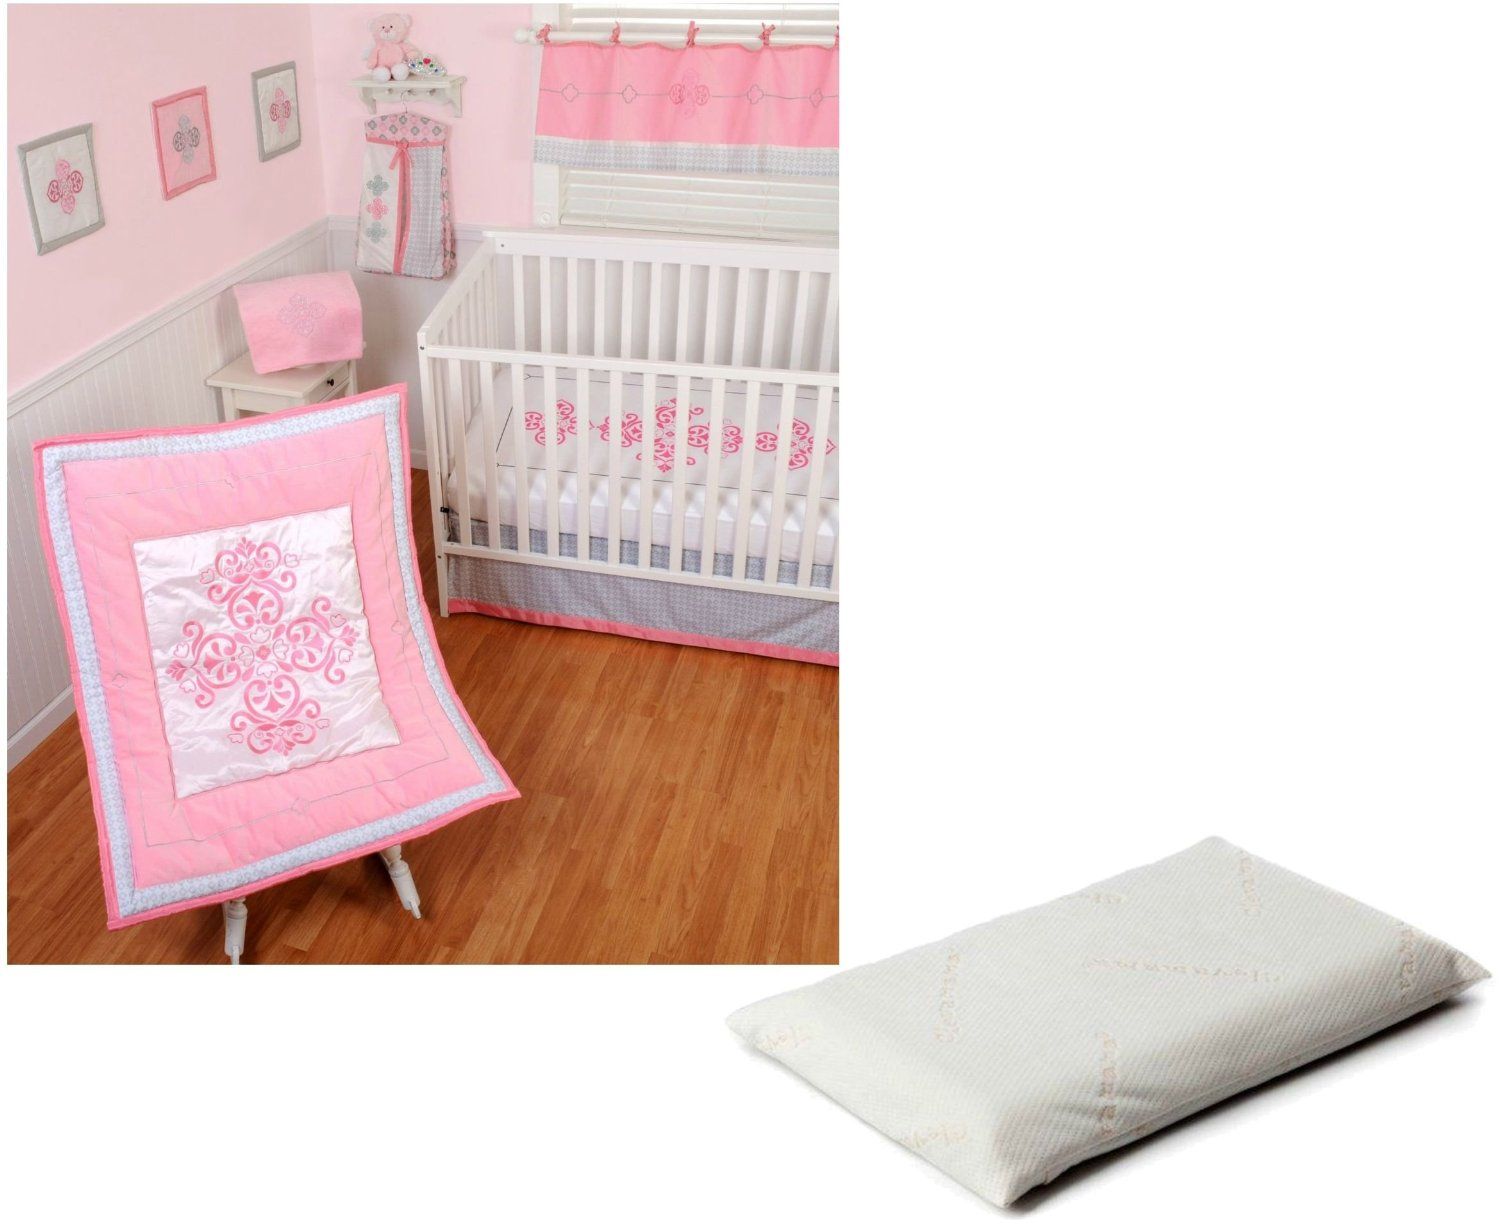 Sumersault Princess Crib Bedding 4 Piece Set with ClevaFoam Baby Pillow by Sumersault